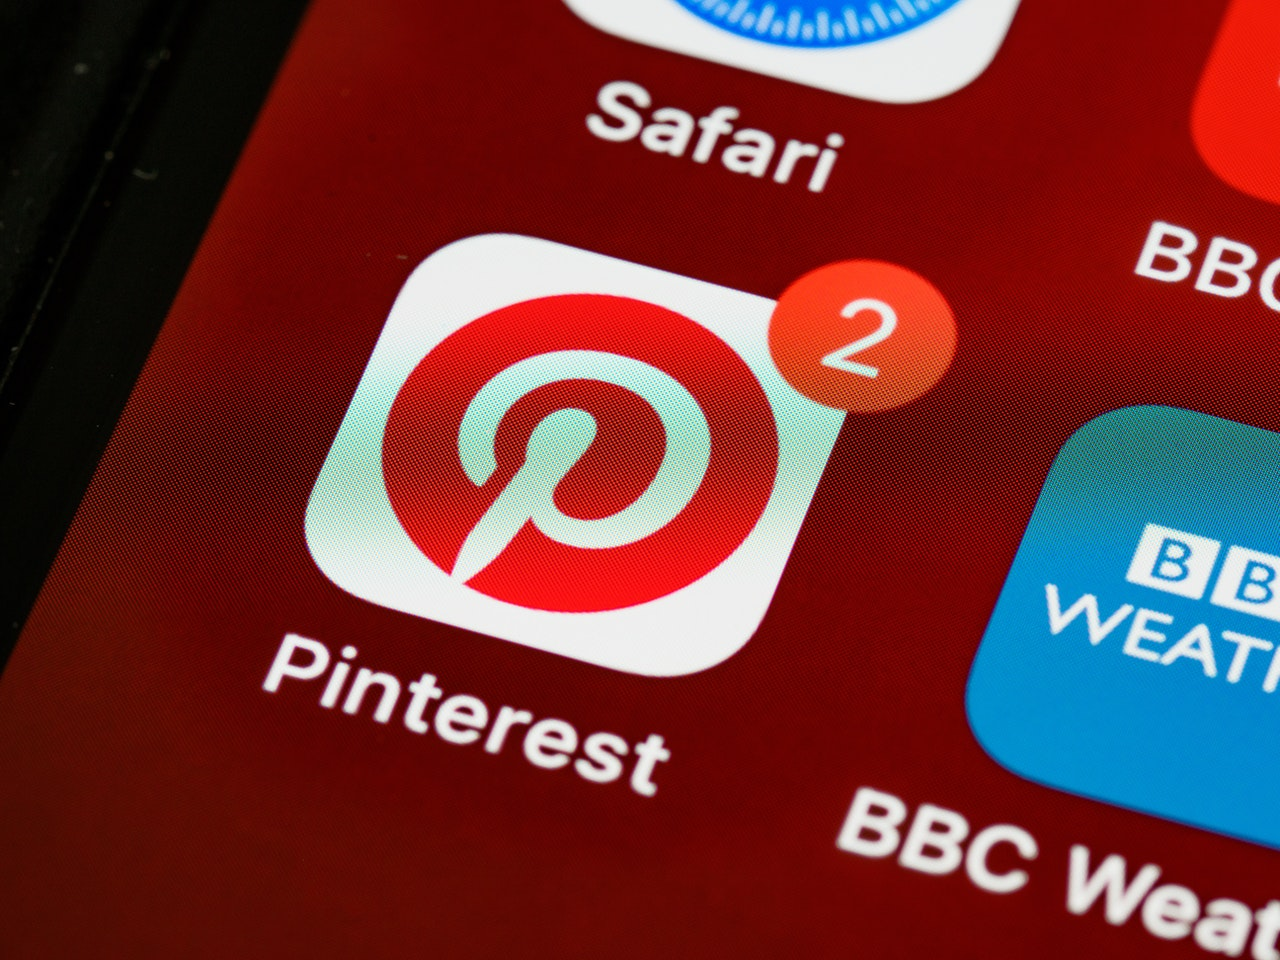 3 Things You Must Do On Pinterest As a New Blogger